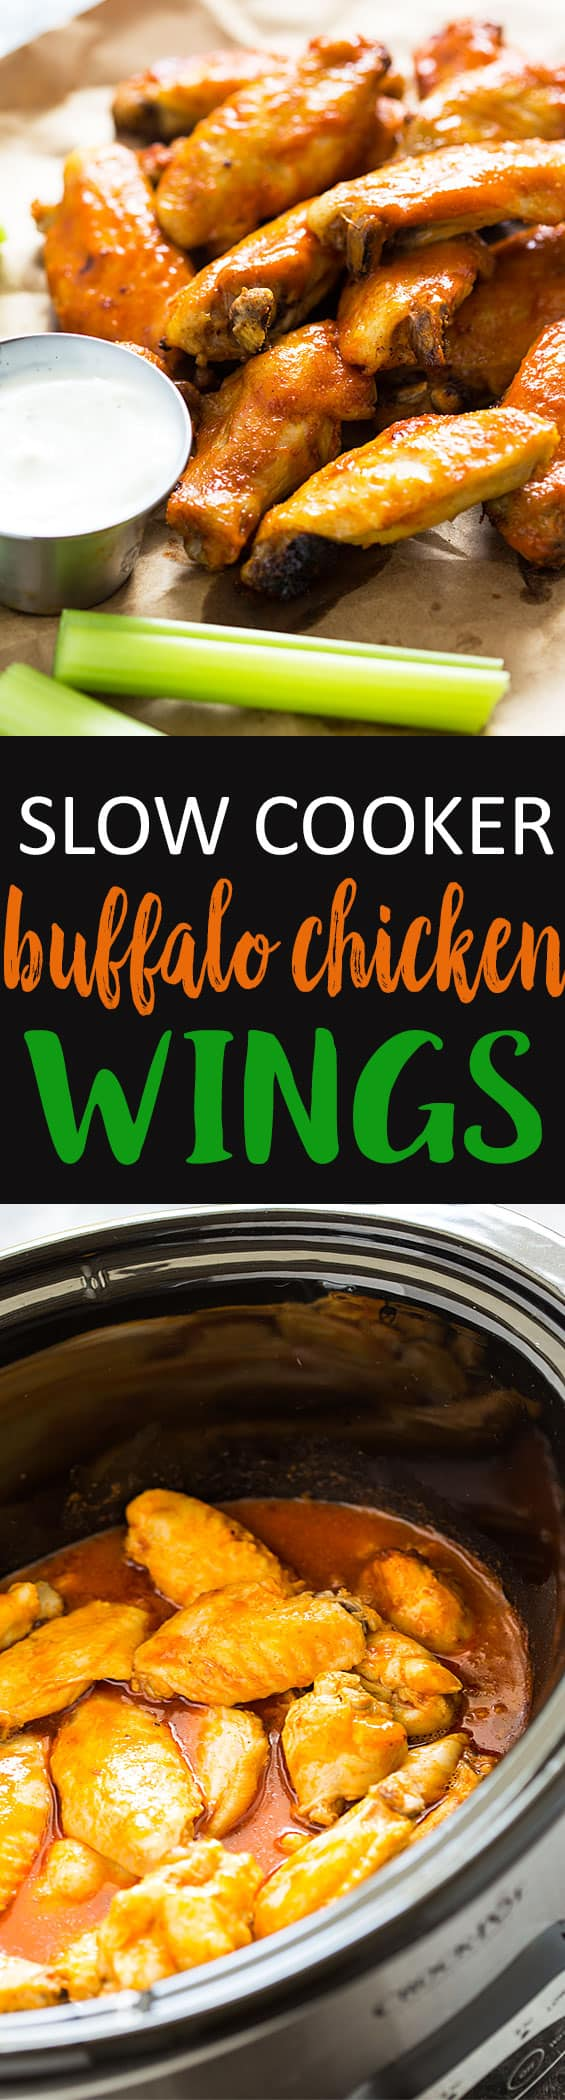 Slow Cooker Buffalo Chicken Wings - Perfectly seasoned and tender buffalo wings prepared in your slow cooker, then baked for a perfectly crisp crust full of flavor!